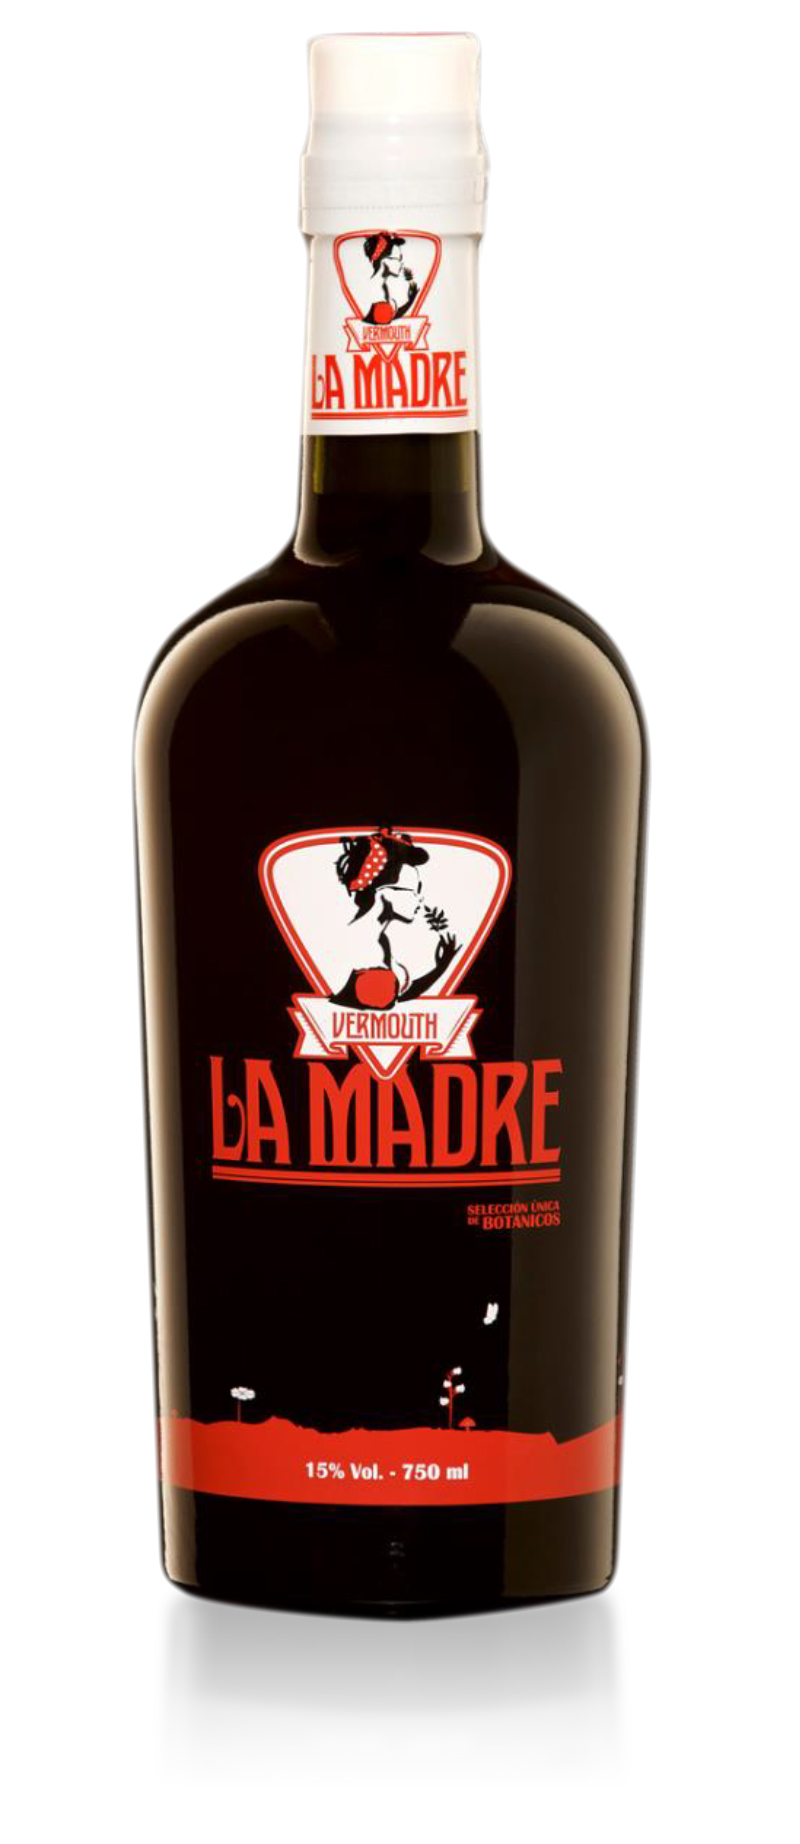 LA-MADRE-red1.jpg